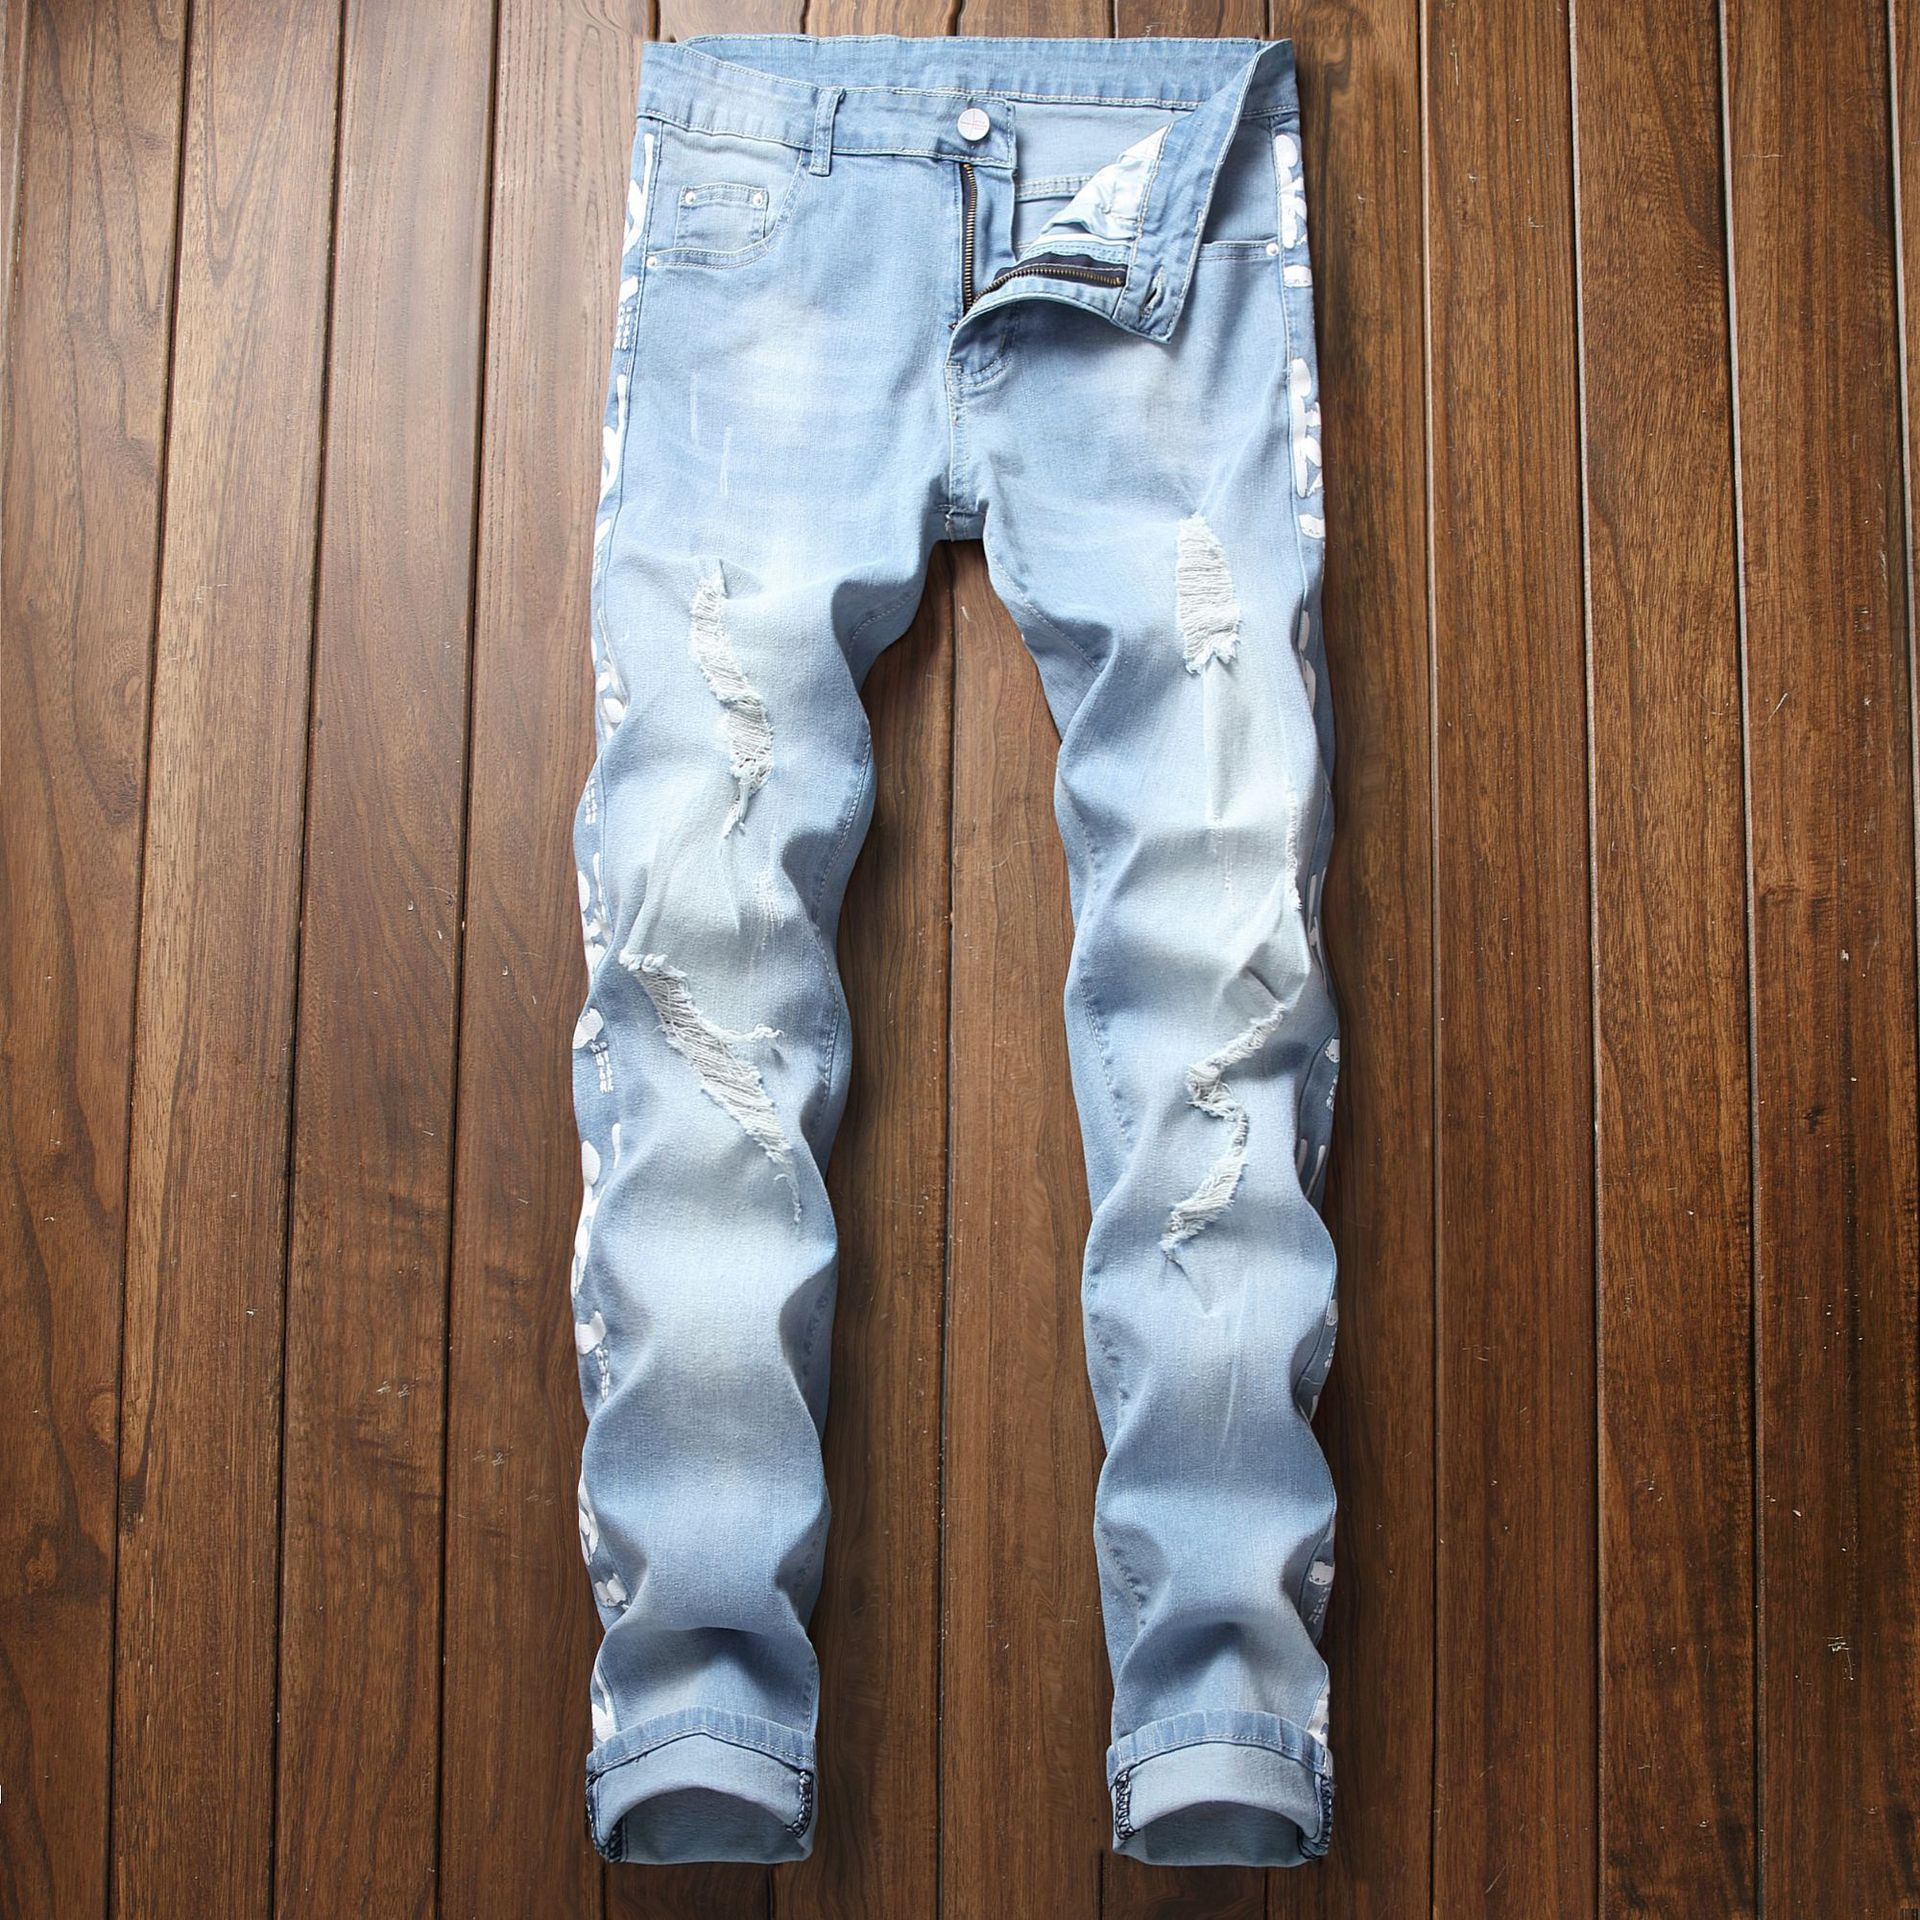 New Style Men'S Wear With Holes Elasticity Printed Jeans Slim Fit MEN'S Jeans